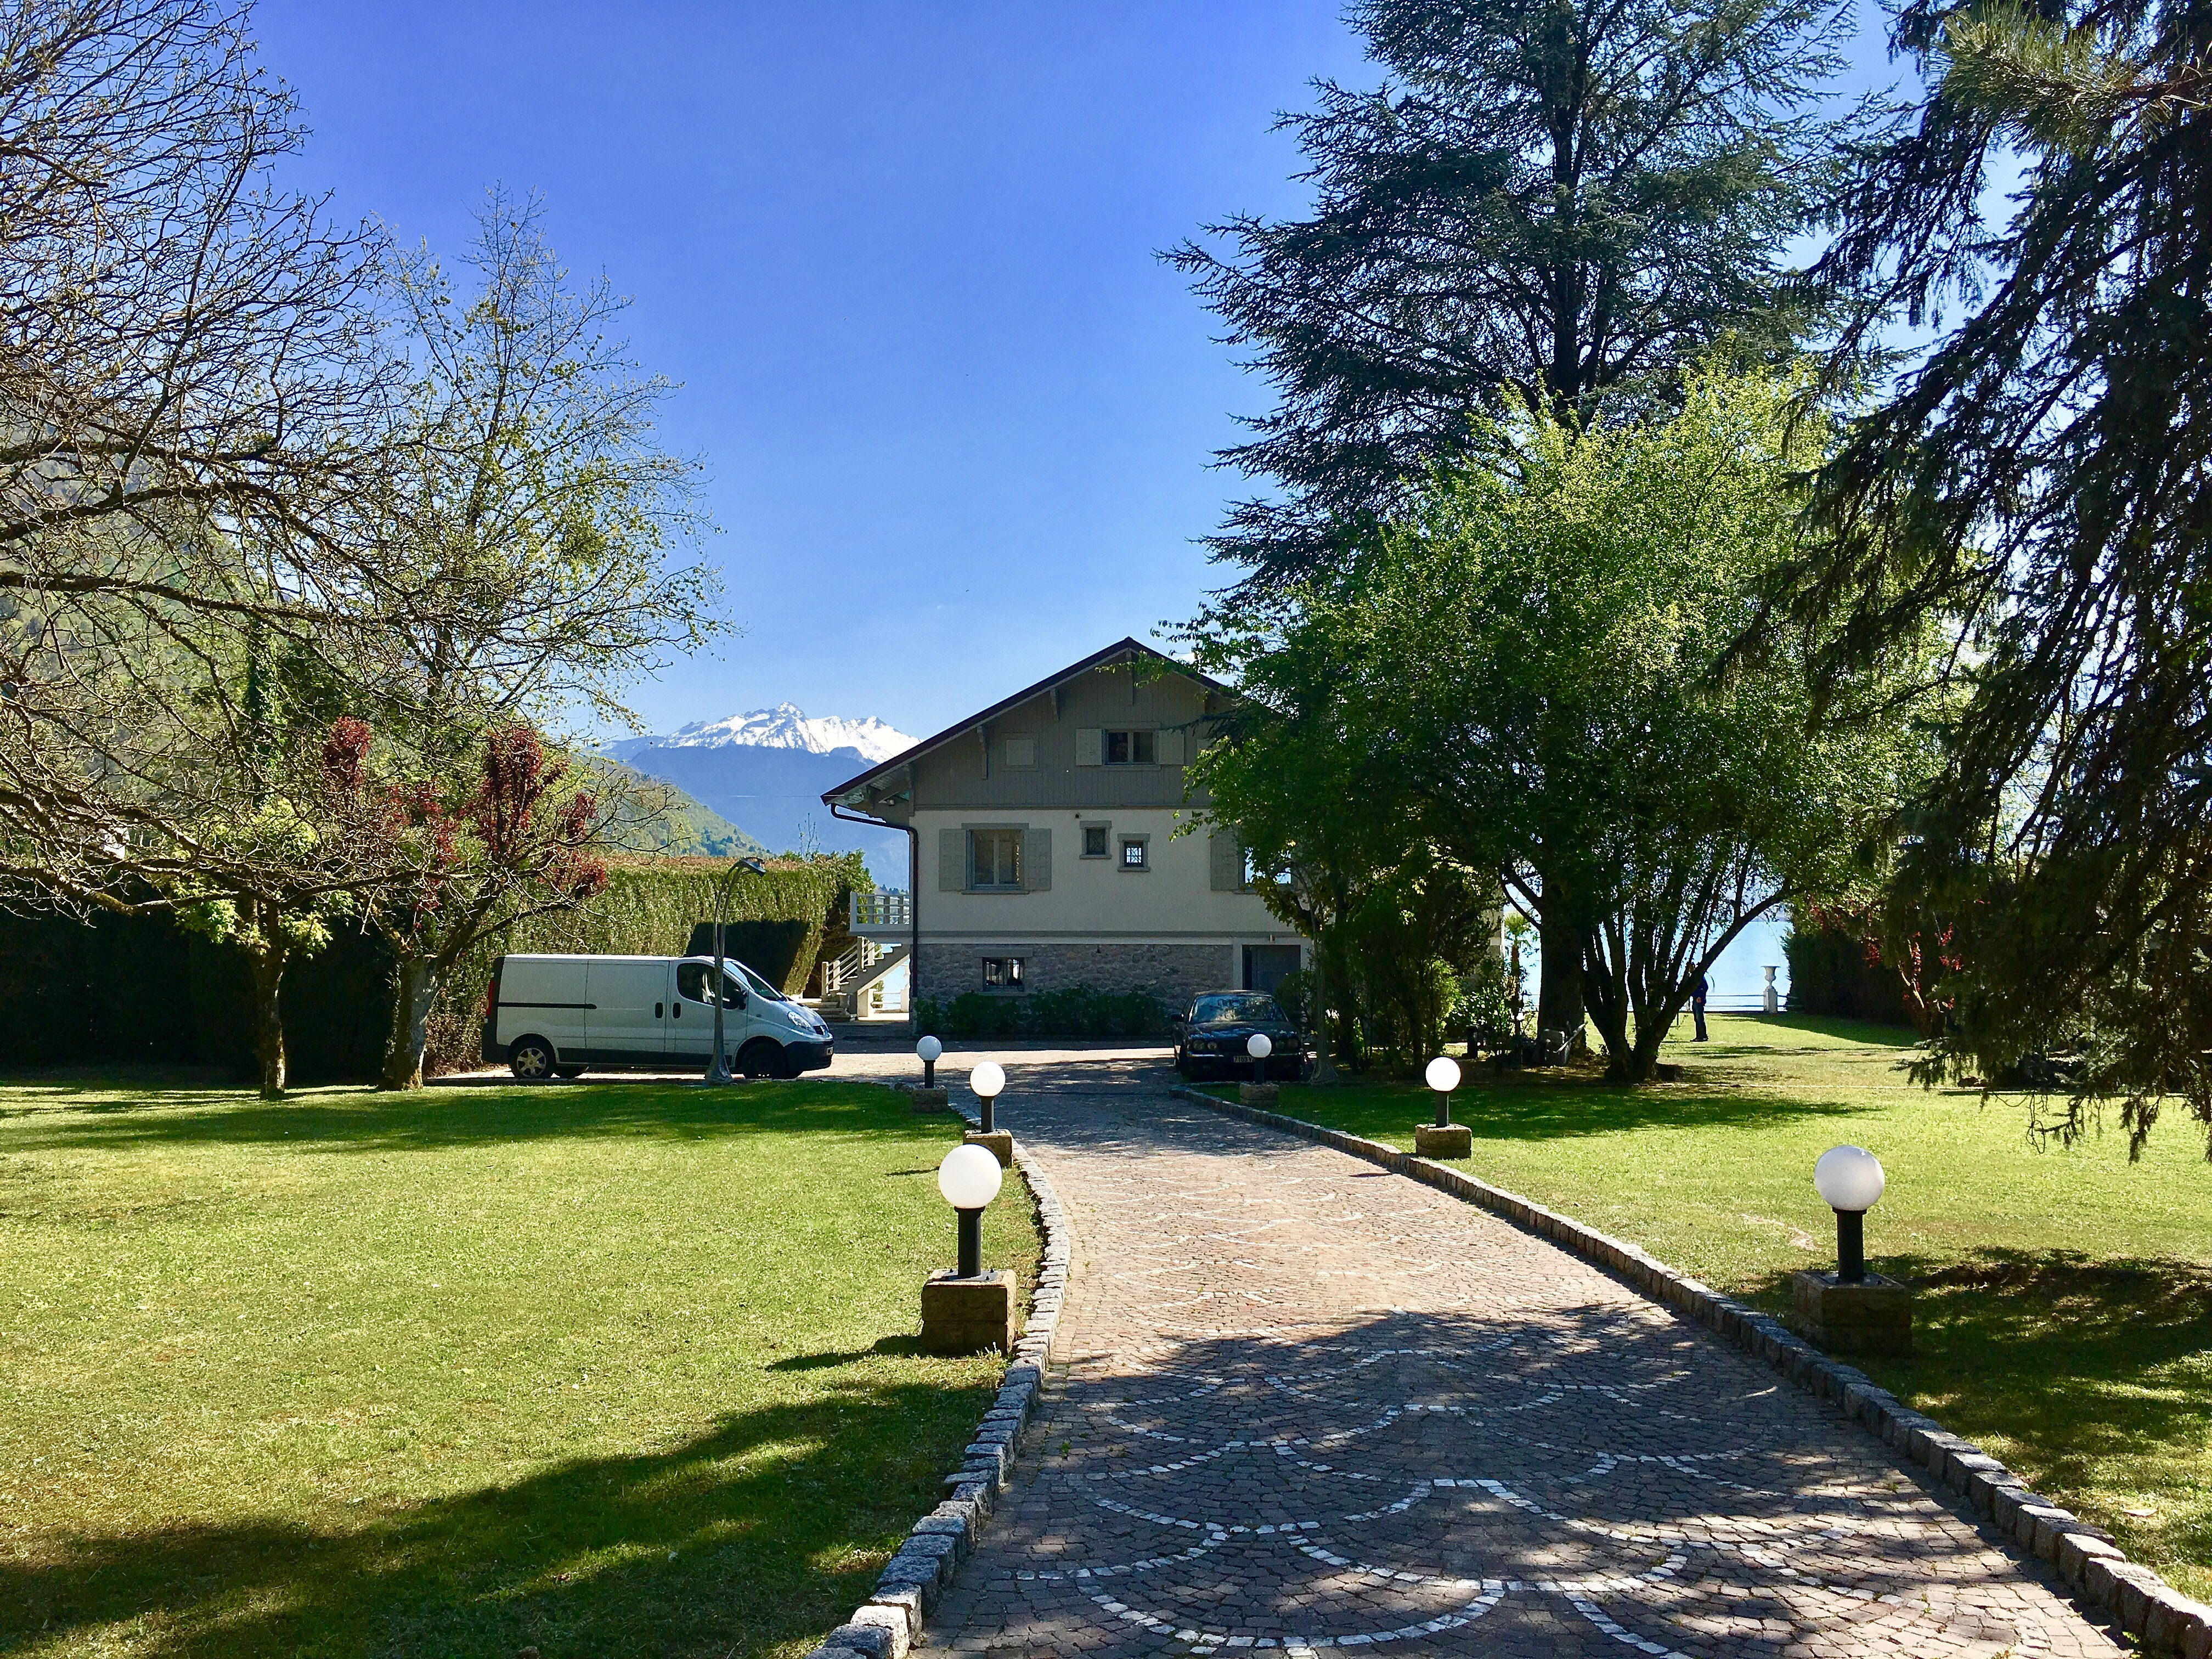 Annecy location france brc gestion entretien jardin for Entretien jardin d une location